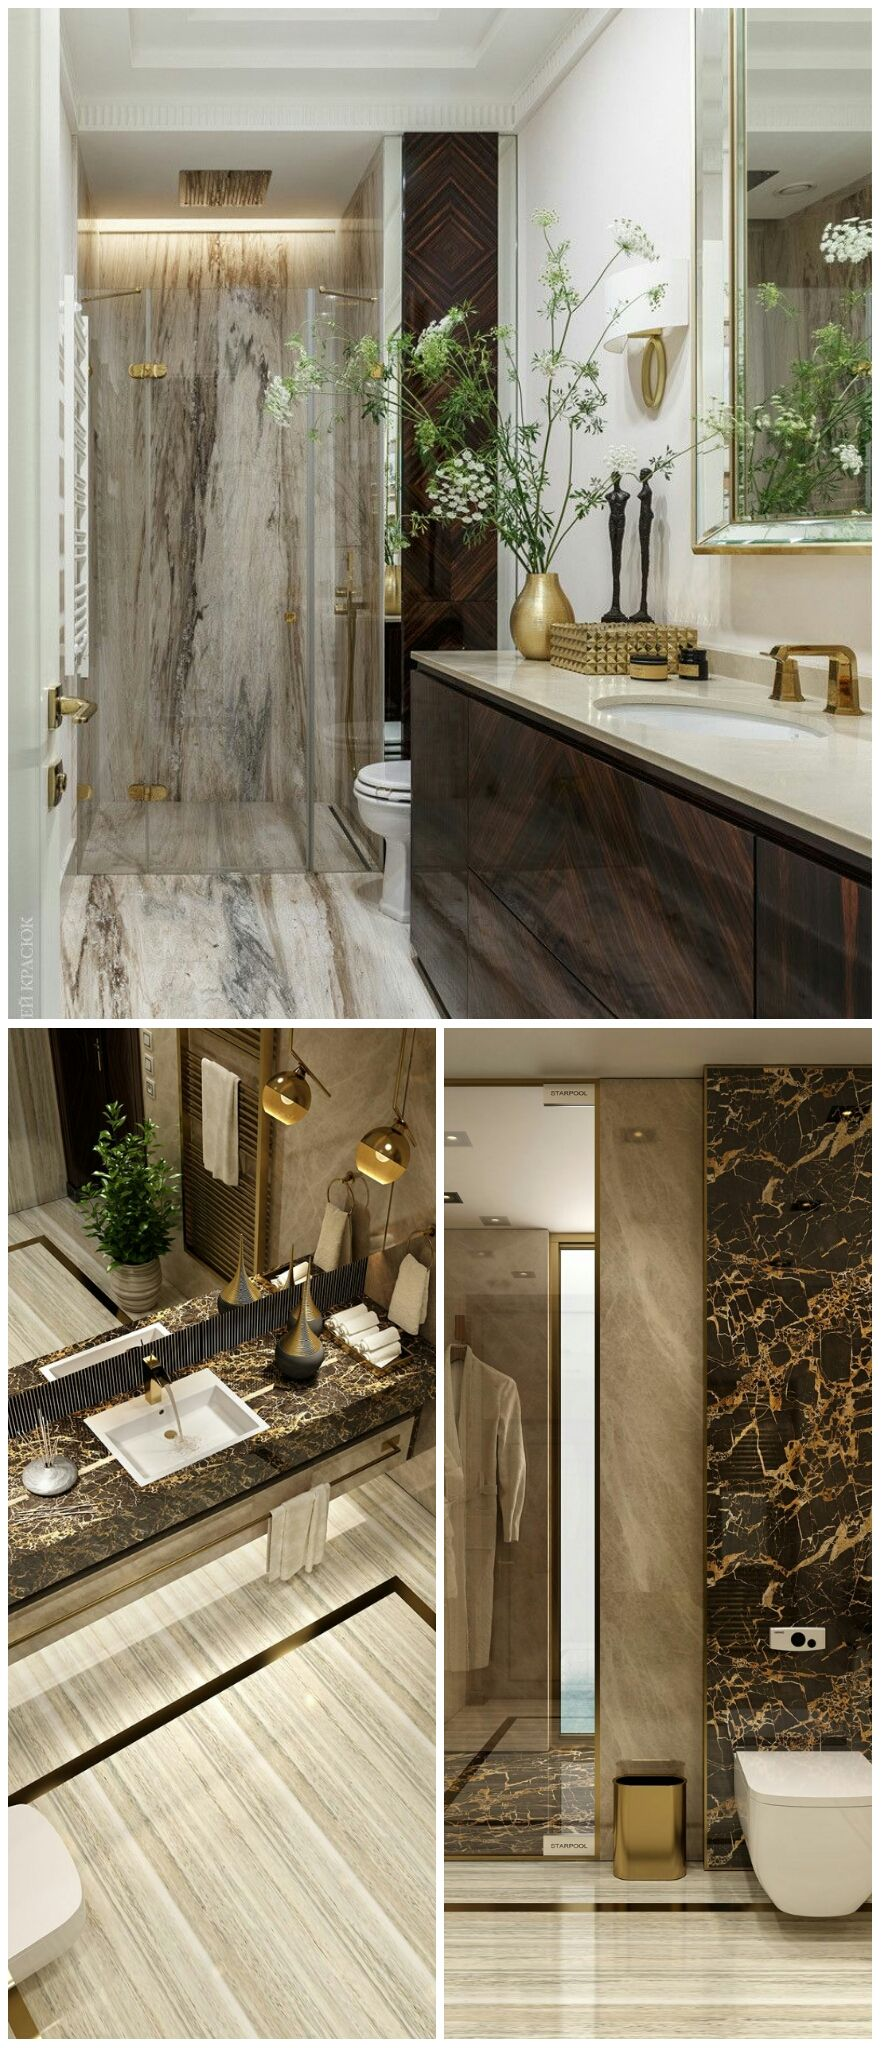 Luxury bathroom master baths walk in shower is very important for your home whether you choose the luxury bathroom master baths photo galleries or interior